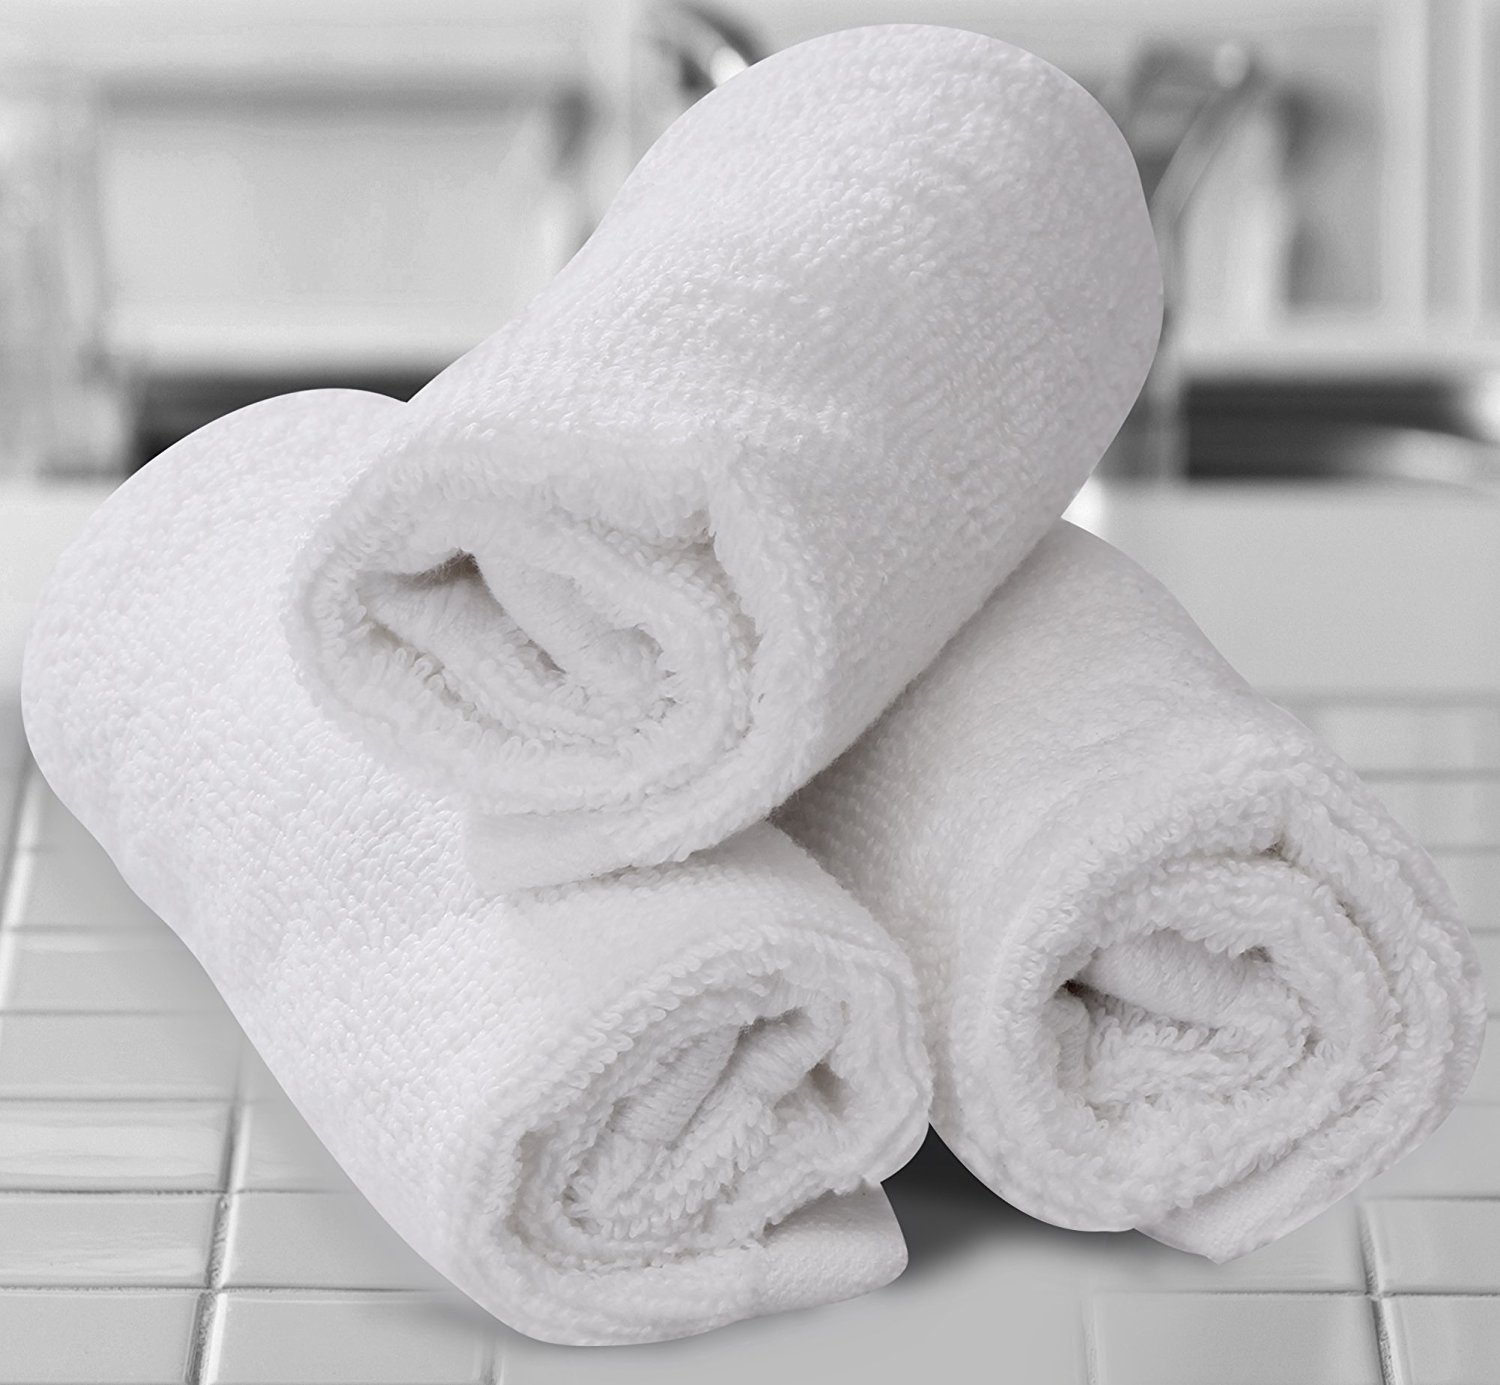 TowelPro Luxury Premium Soft 100% Cotton Highly Absorbent Machine Washable Multi-Purpose, Hotel, Spa, Home, Set of 2 Bath Mats 20'' X 34'' (White)